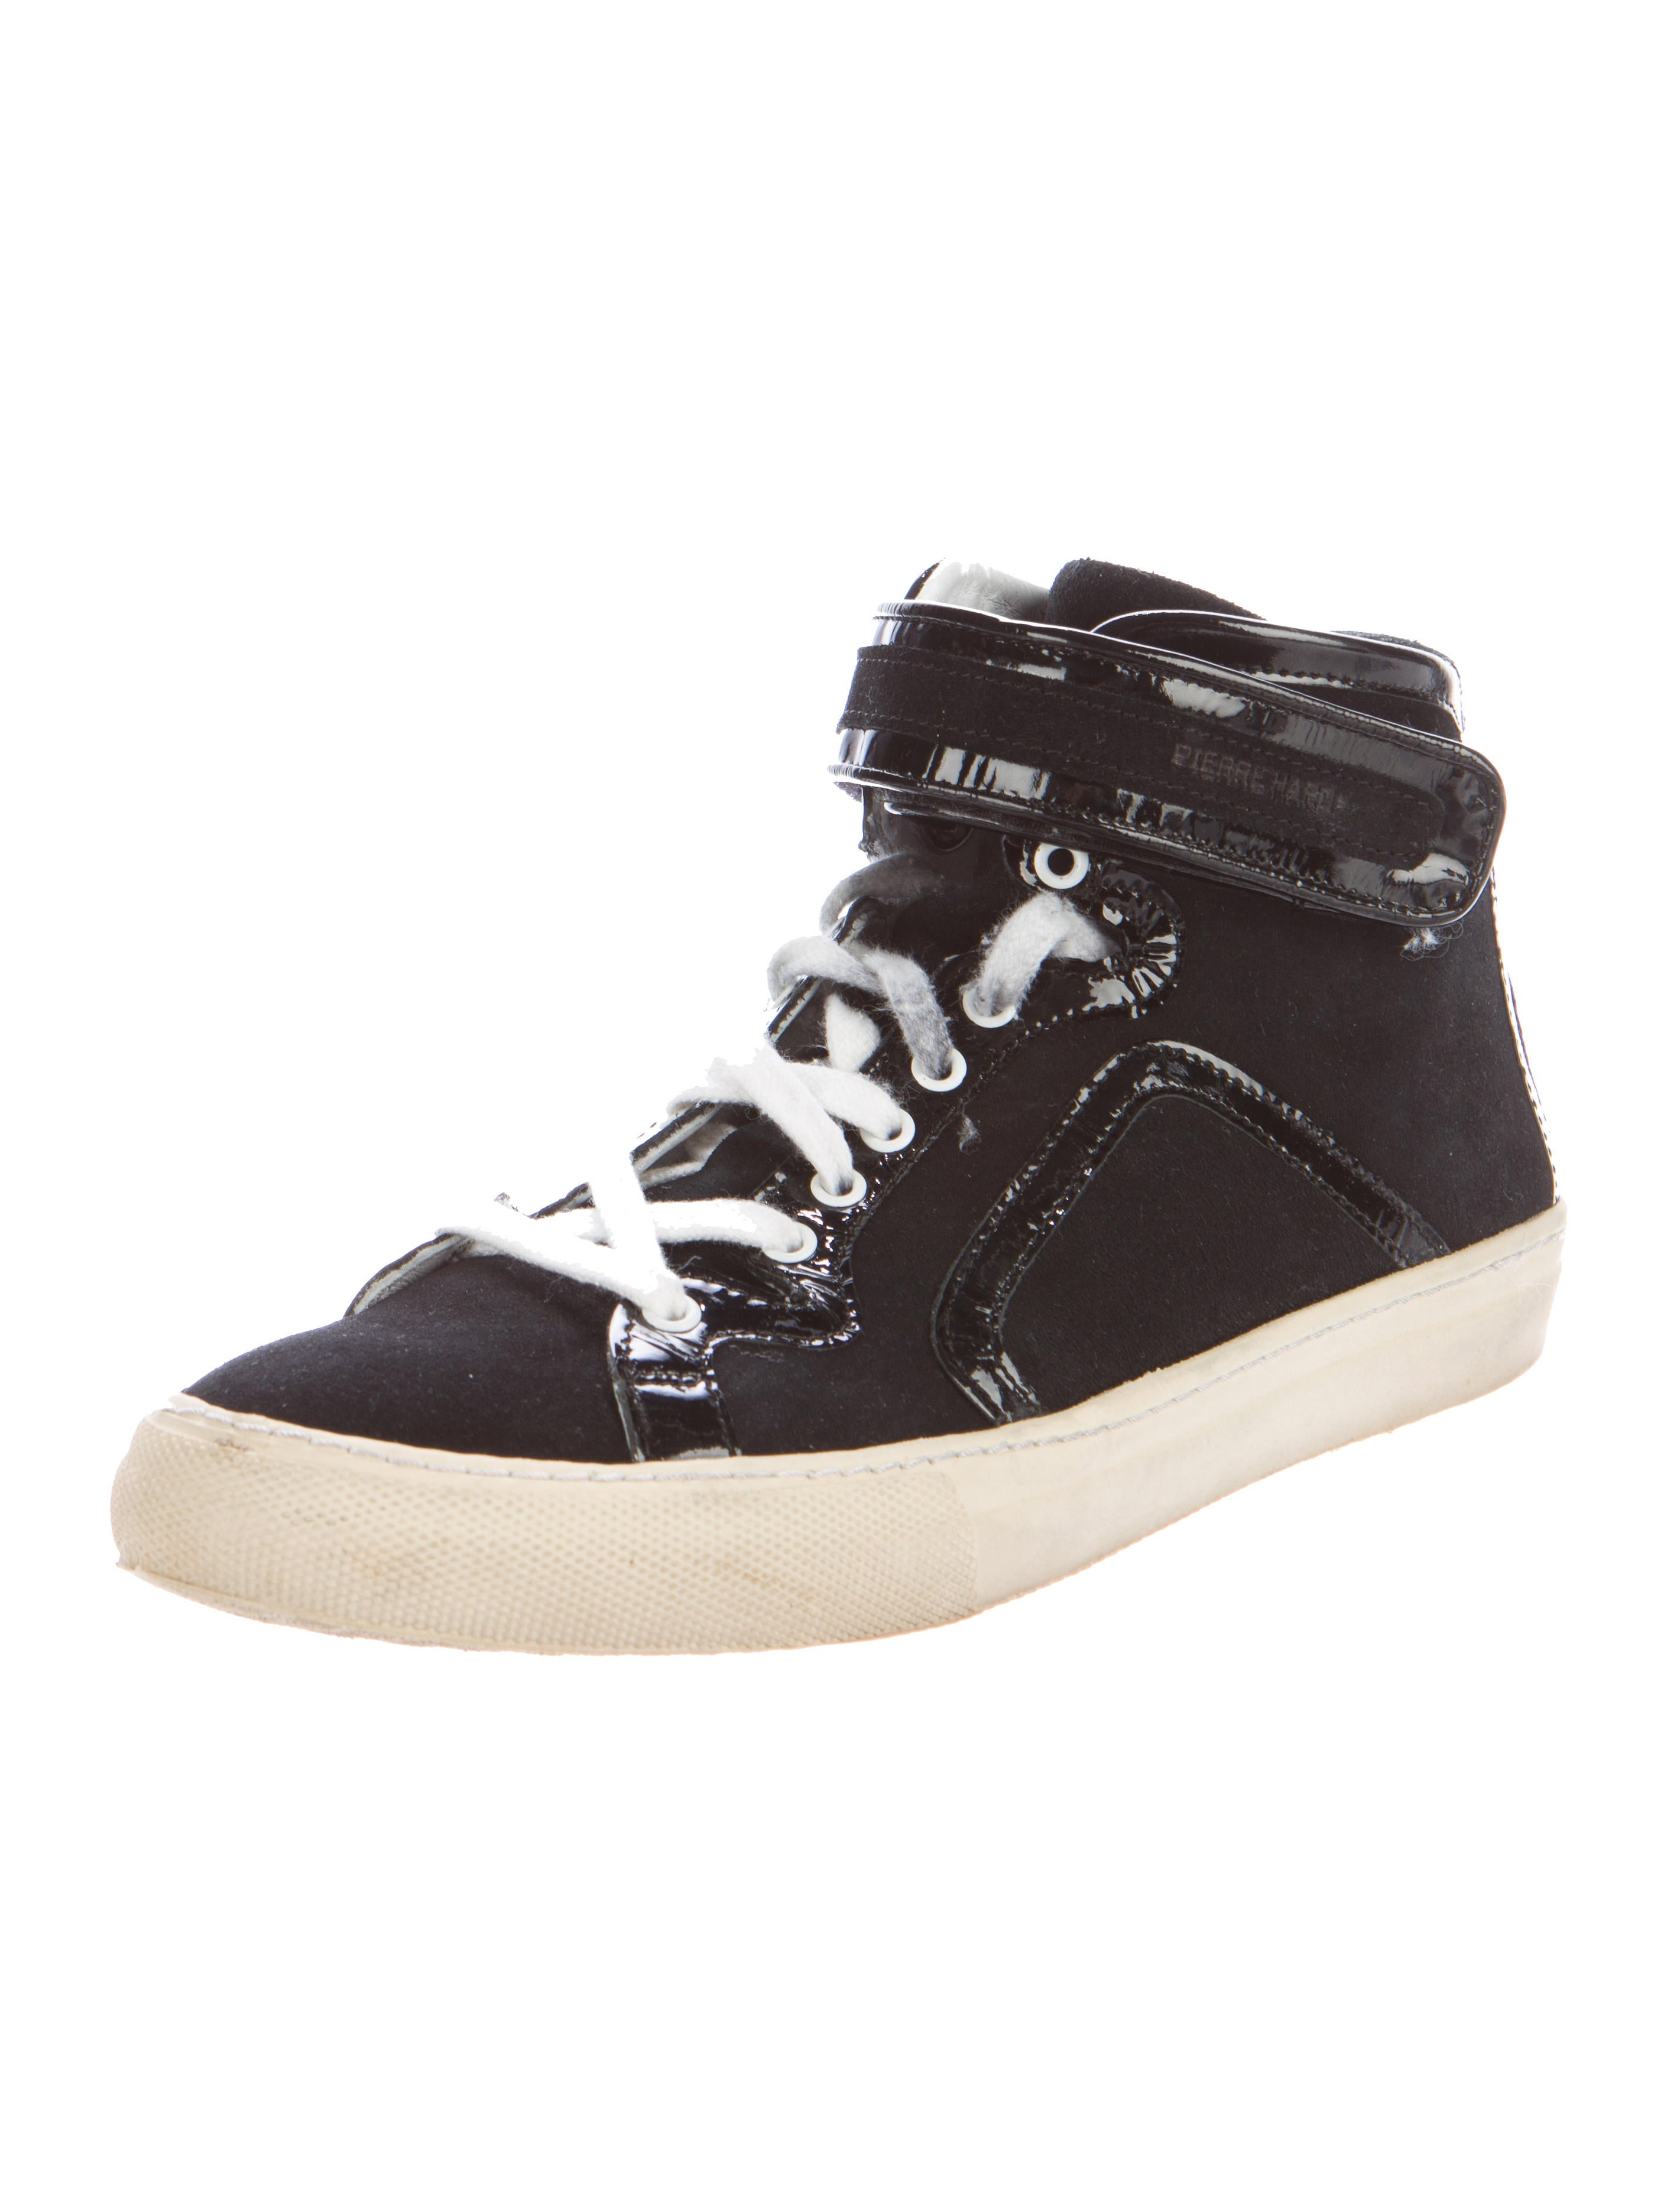 pierre hardy round toe high top sneakers shoes pie23448 the realreal. Black Bedroom Furniture Sets. Home Design Ideas